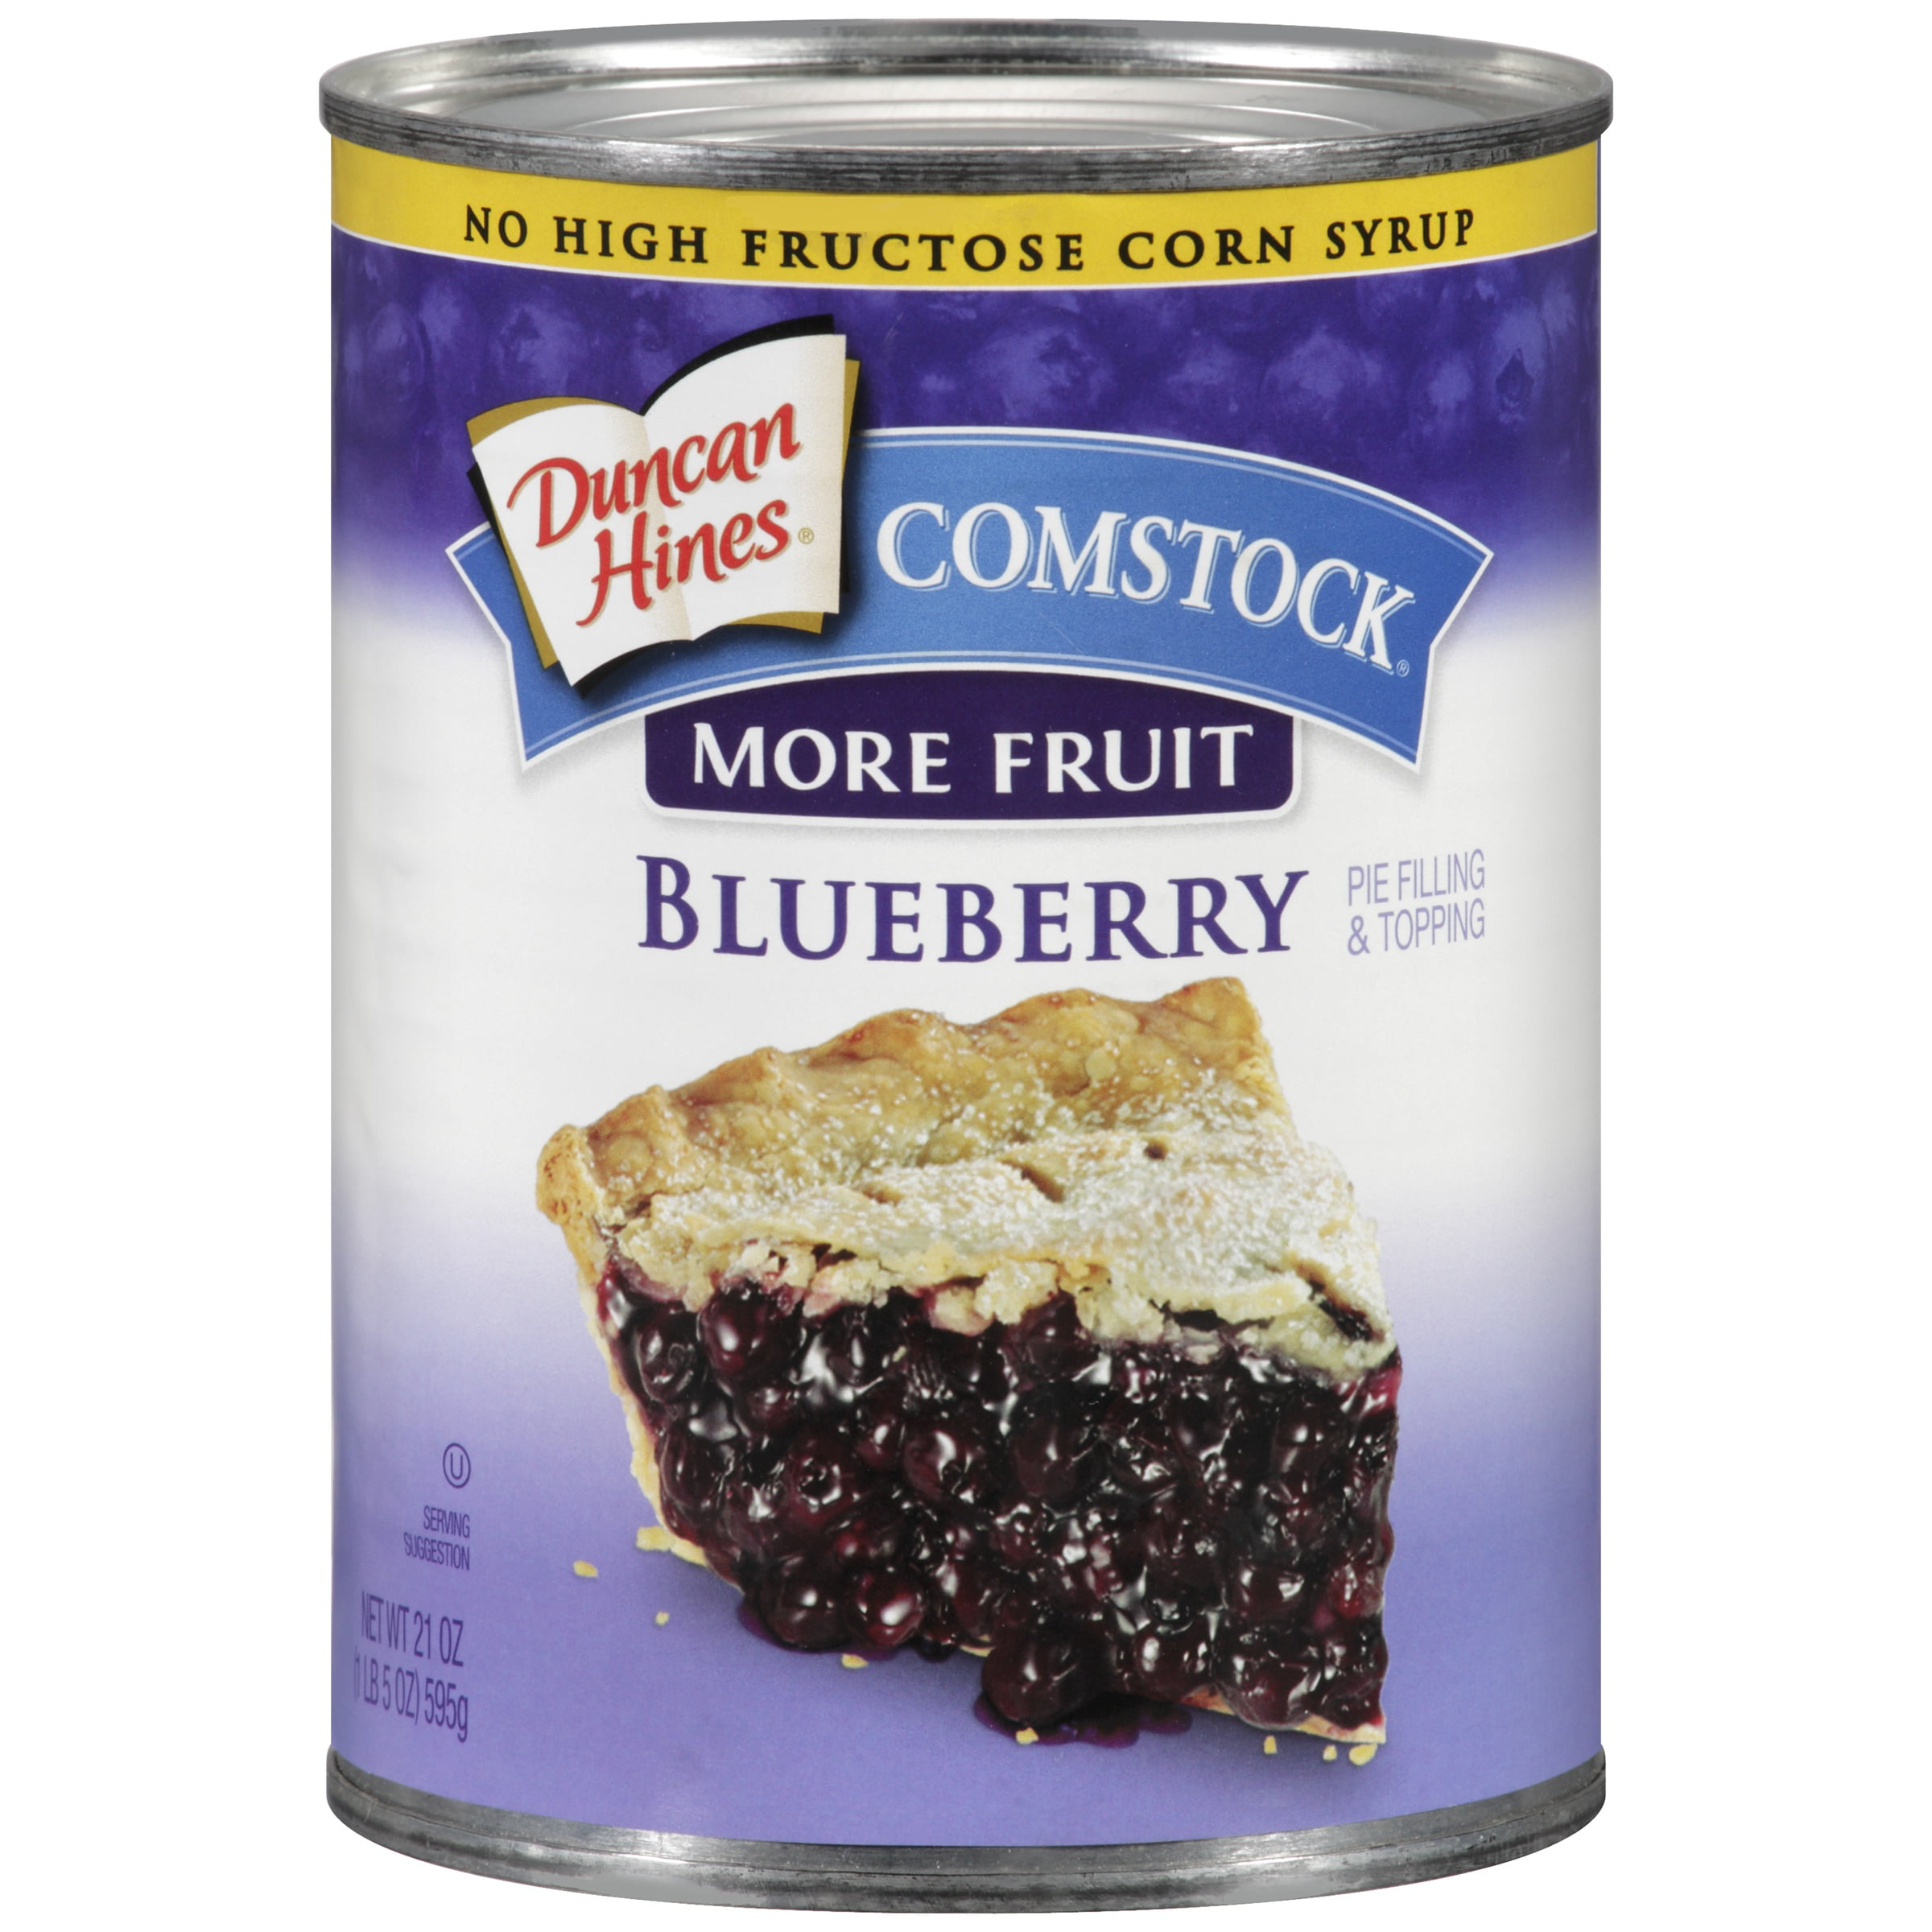 Comstock More Fruit Blueberry Pie Filling Or Topping, 21 oz by Generic